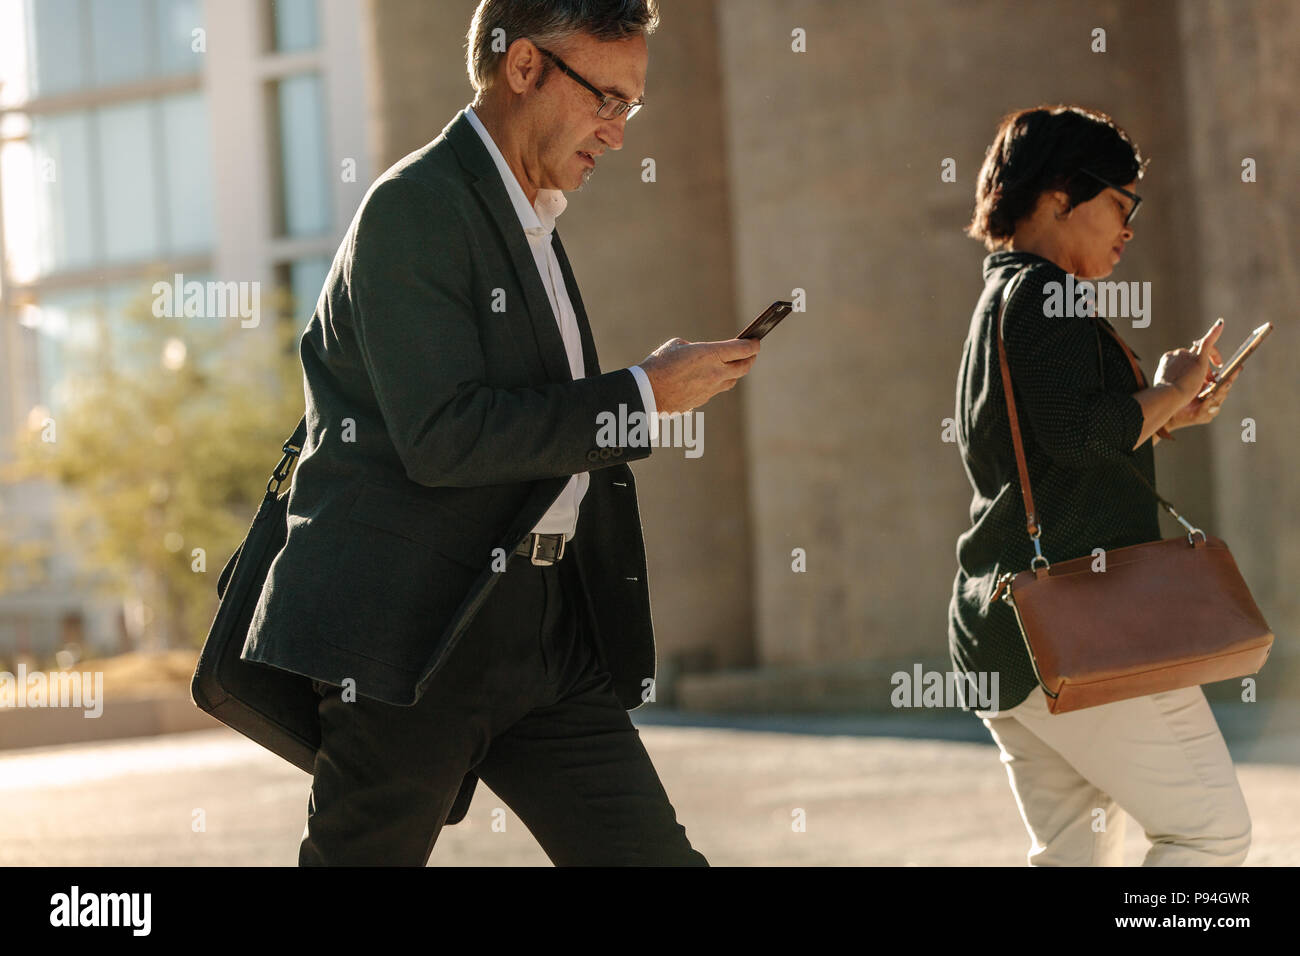 Man and woman using mobile phone while commuting to office on a city street. Business people checking their mobile phone while walking to office showi - Stock Image